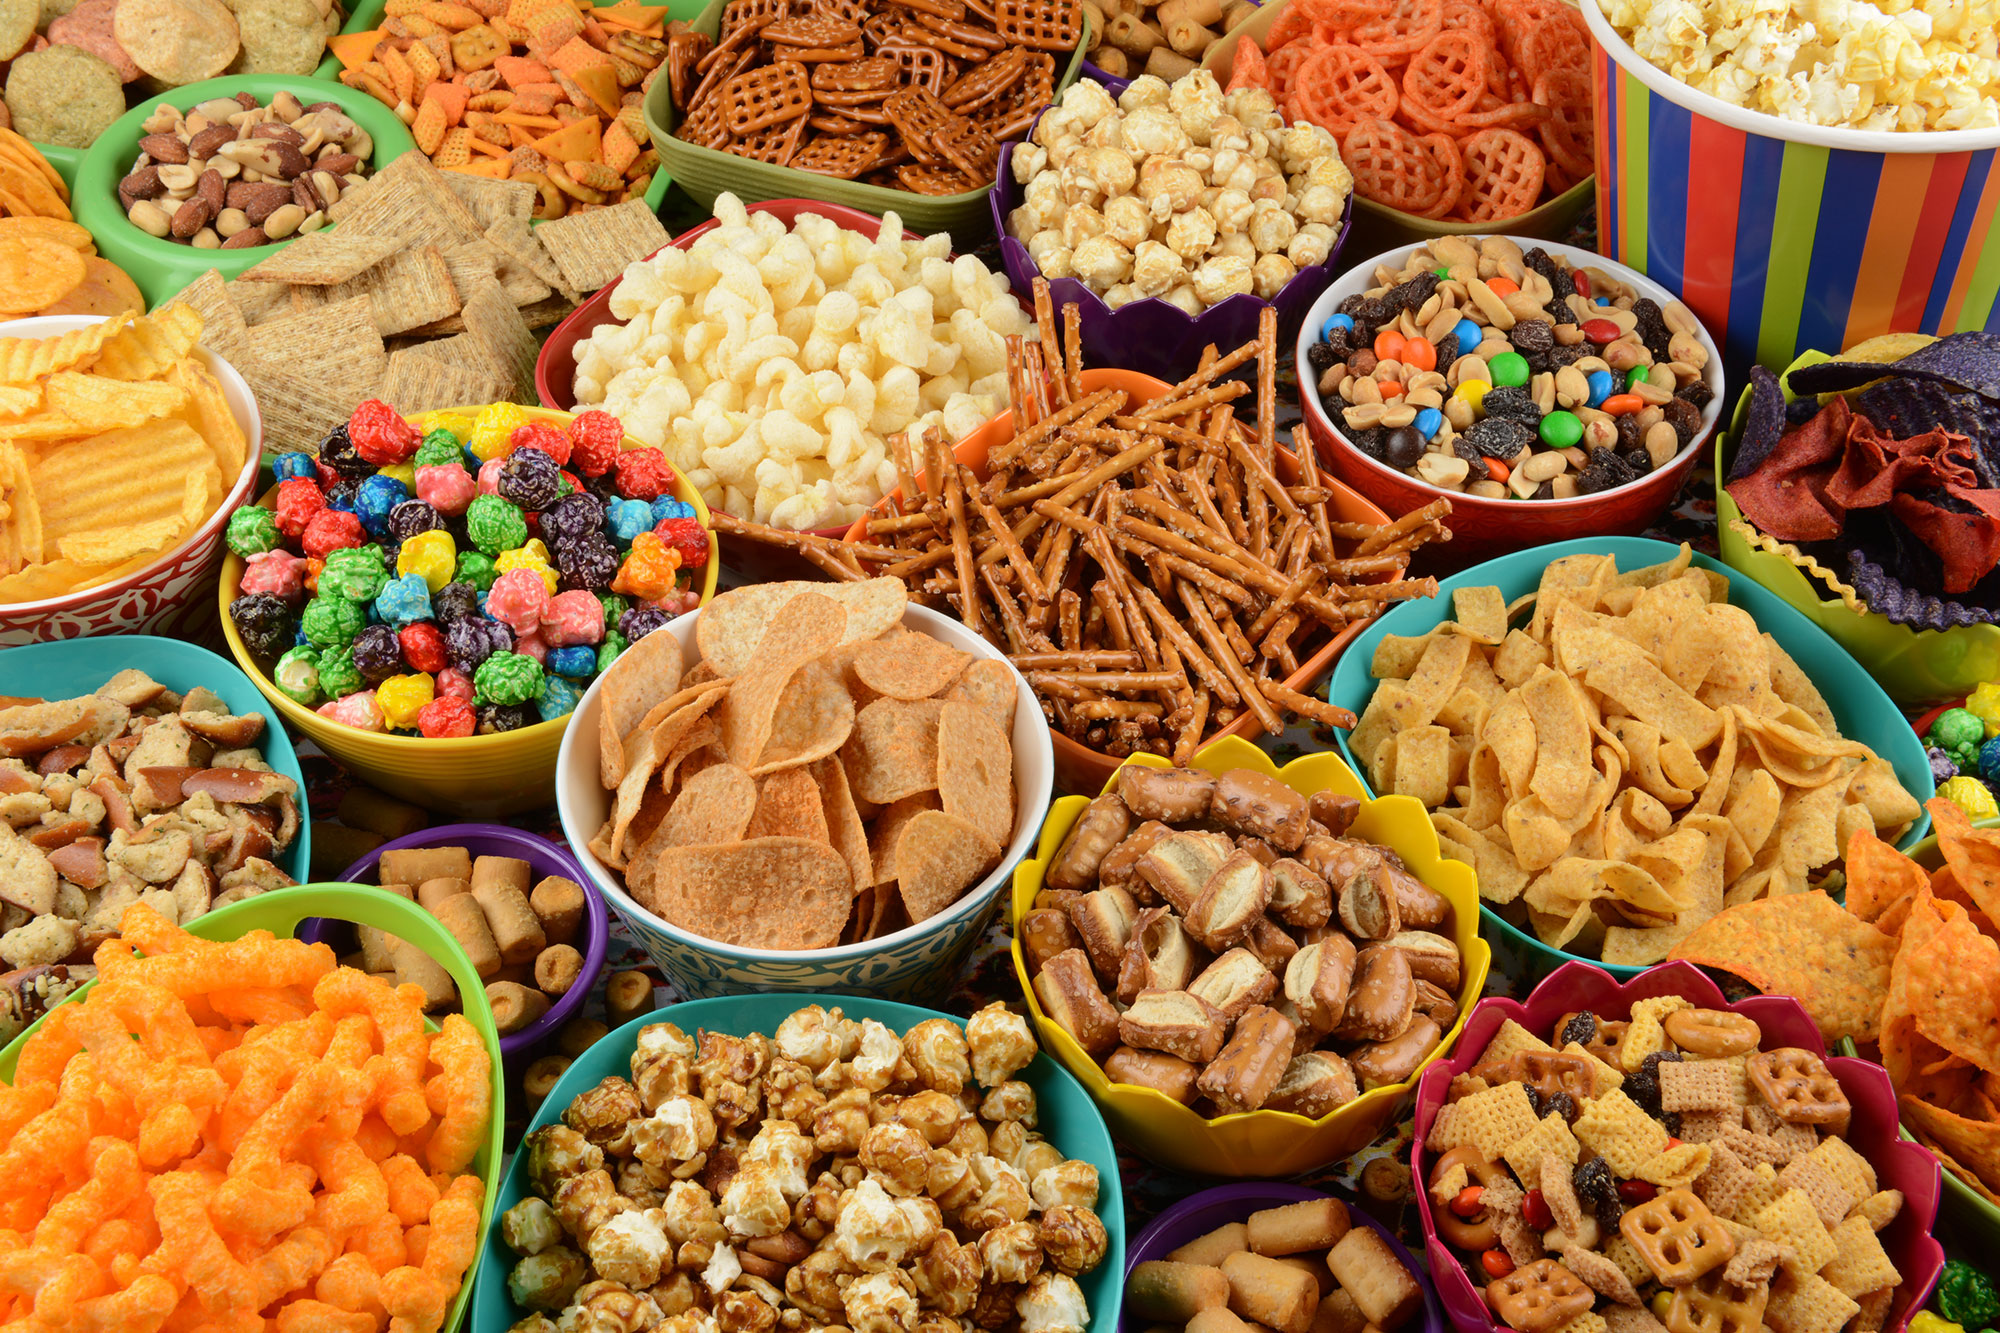 An image of snacks